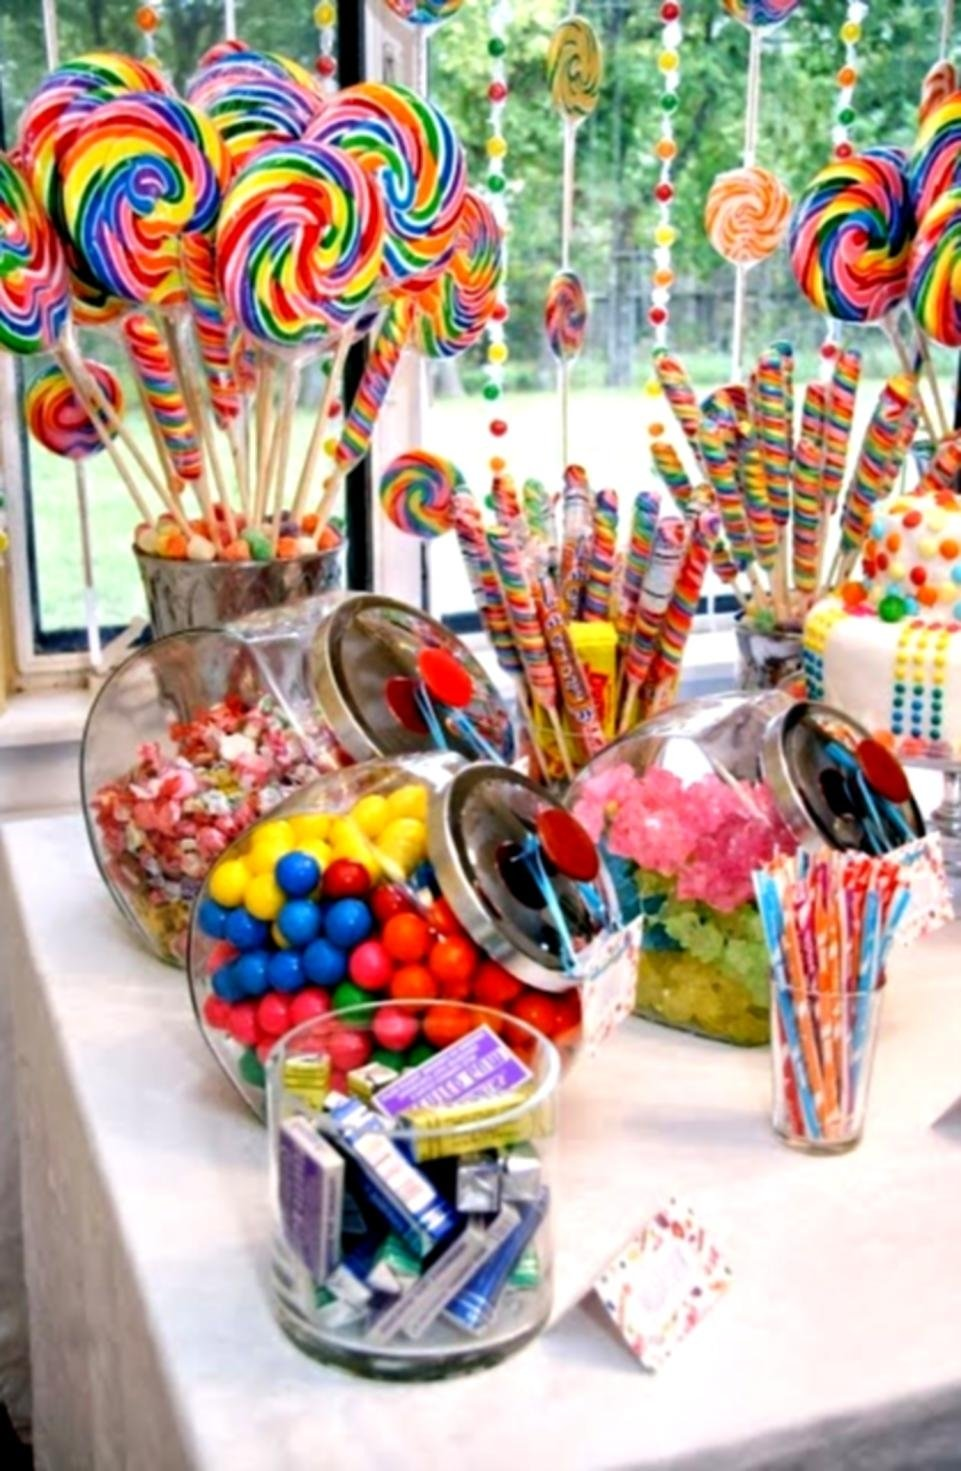 10 Most Recommended Teenage Girl Birthday Party Ideas home party decorations ideas for girls decor first birthday party 1 2020